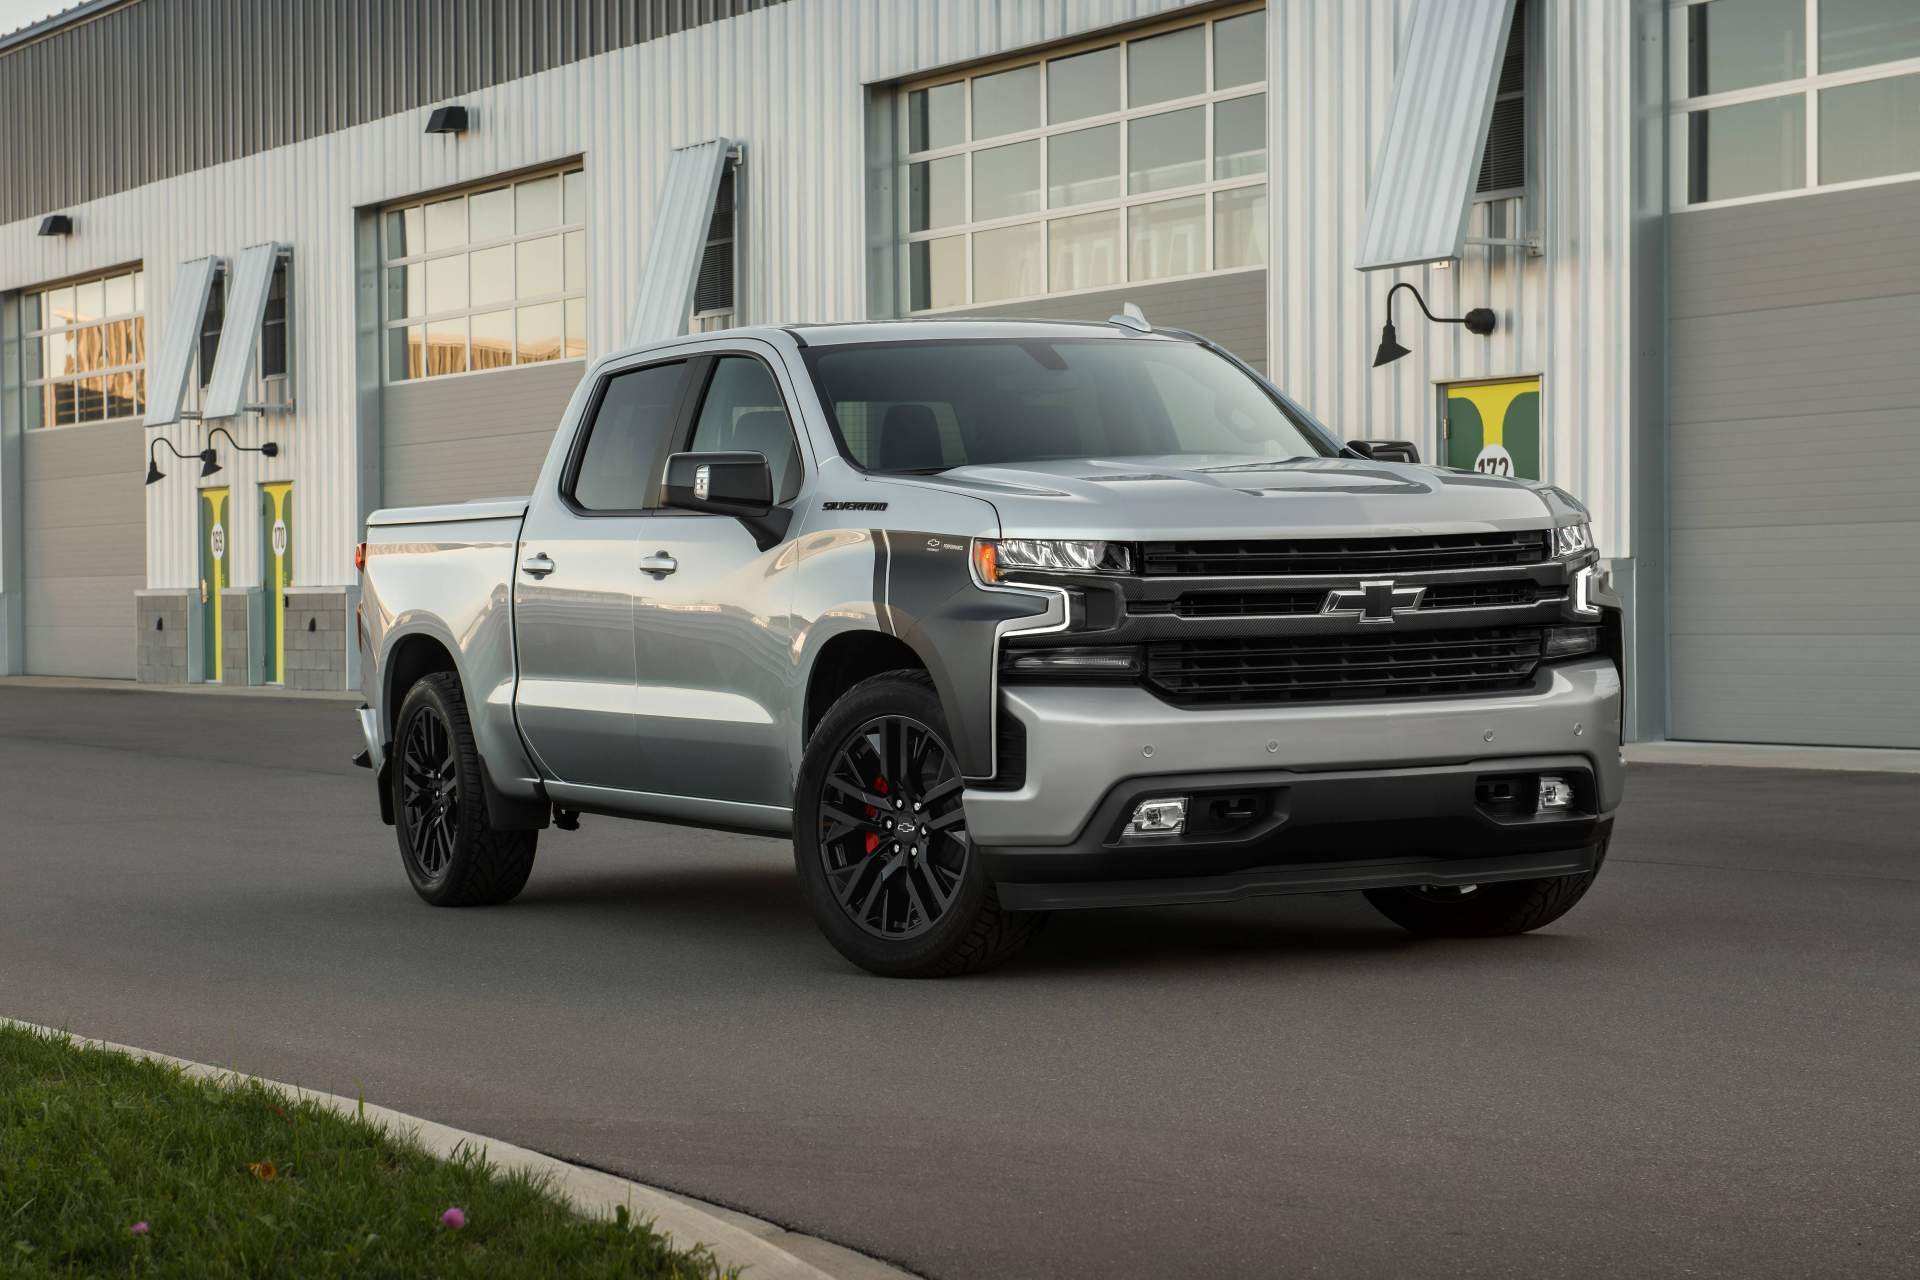 New 2019 Chevrolet-Silverado 1500 RST Silverado 1500 RST for sale $42,100 at M and V Leasing in Brooklyn NY 11223 1